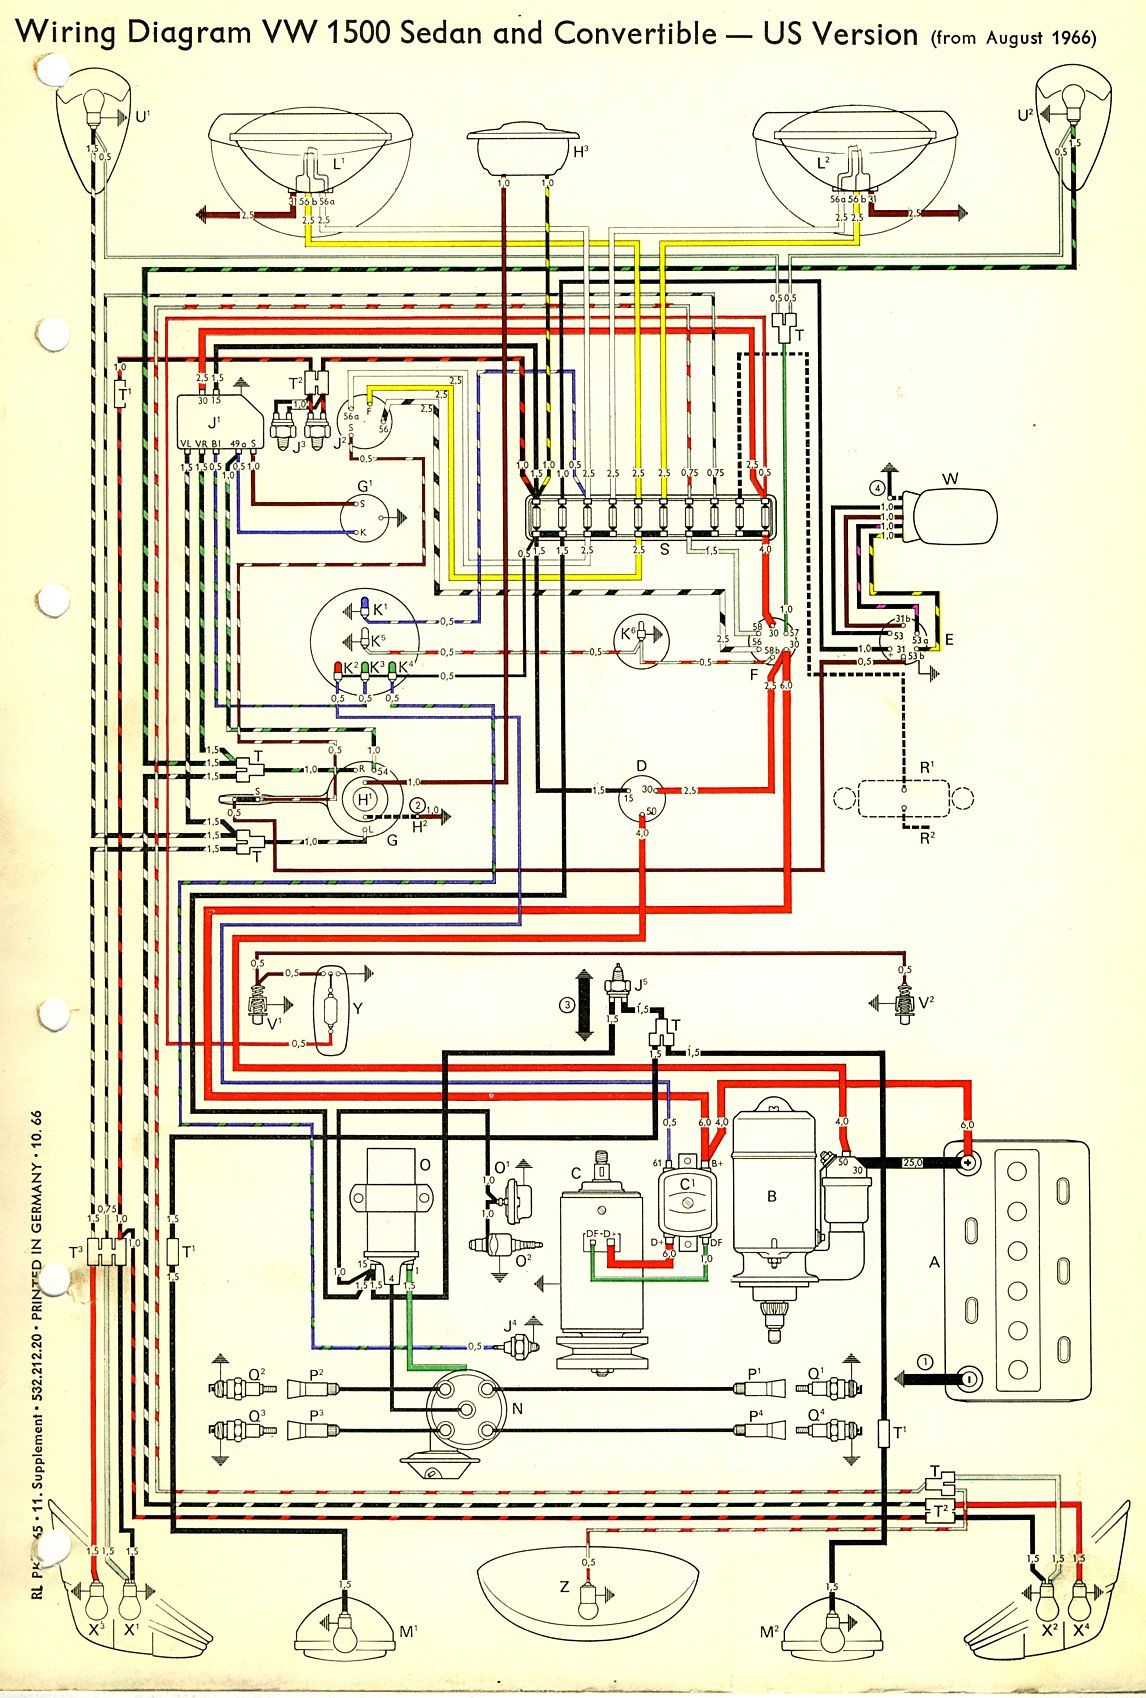 Vw Beetle Wiring | Wiring Diagram on 1965 pontiac grand prix wiring diagram, 1965 ford falcon wiring diagram, 1973 ford mustang wiring diagram, 2006 ford econoline fuse box diagram, 1965 ford mustang wiring diagram, 1995 ford bronco engine diagram, 1965 chevrolet pickup wiring diagram, 1995 ford truck wiring diagram, 1965 ford f150 wiring diagram, 1963 ford falcon wiring diagram, 1977 ford f-150 wiring diagram, 1965 ford ranchero wiring diagram, 1978 ford bronco wiring diagram, 1987 ford bronco wiring diagram, 1965 ford f100 wiring diagram, 1965 ford thunderbird wiring diagram, 1965 ford galaxie wiring diagram, 1965 ford f350 wiring diagram, 1965 chevrolet impala wiring diagram, 1969 chevy camaro wiring diagram,